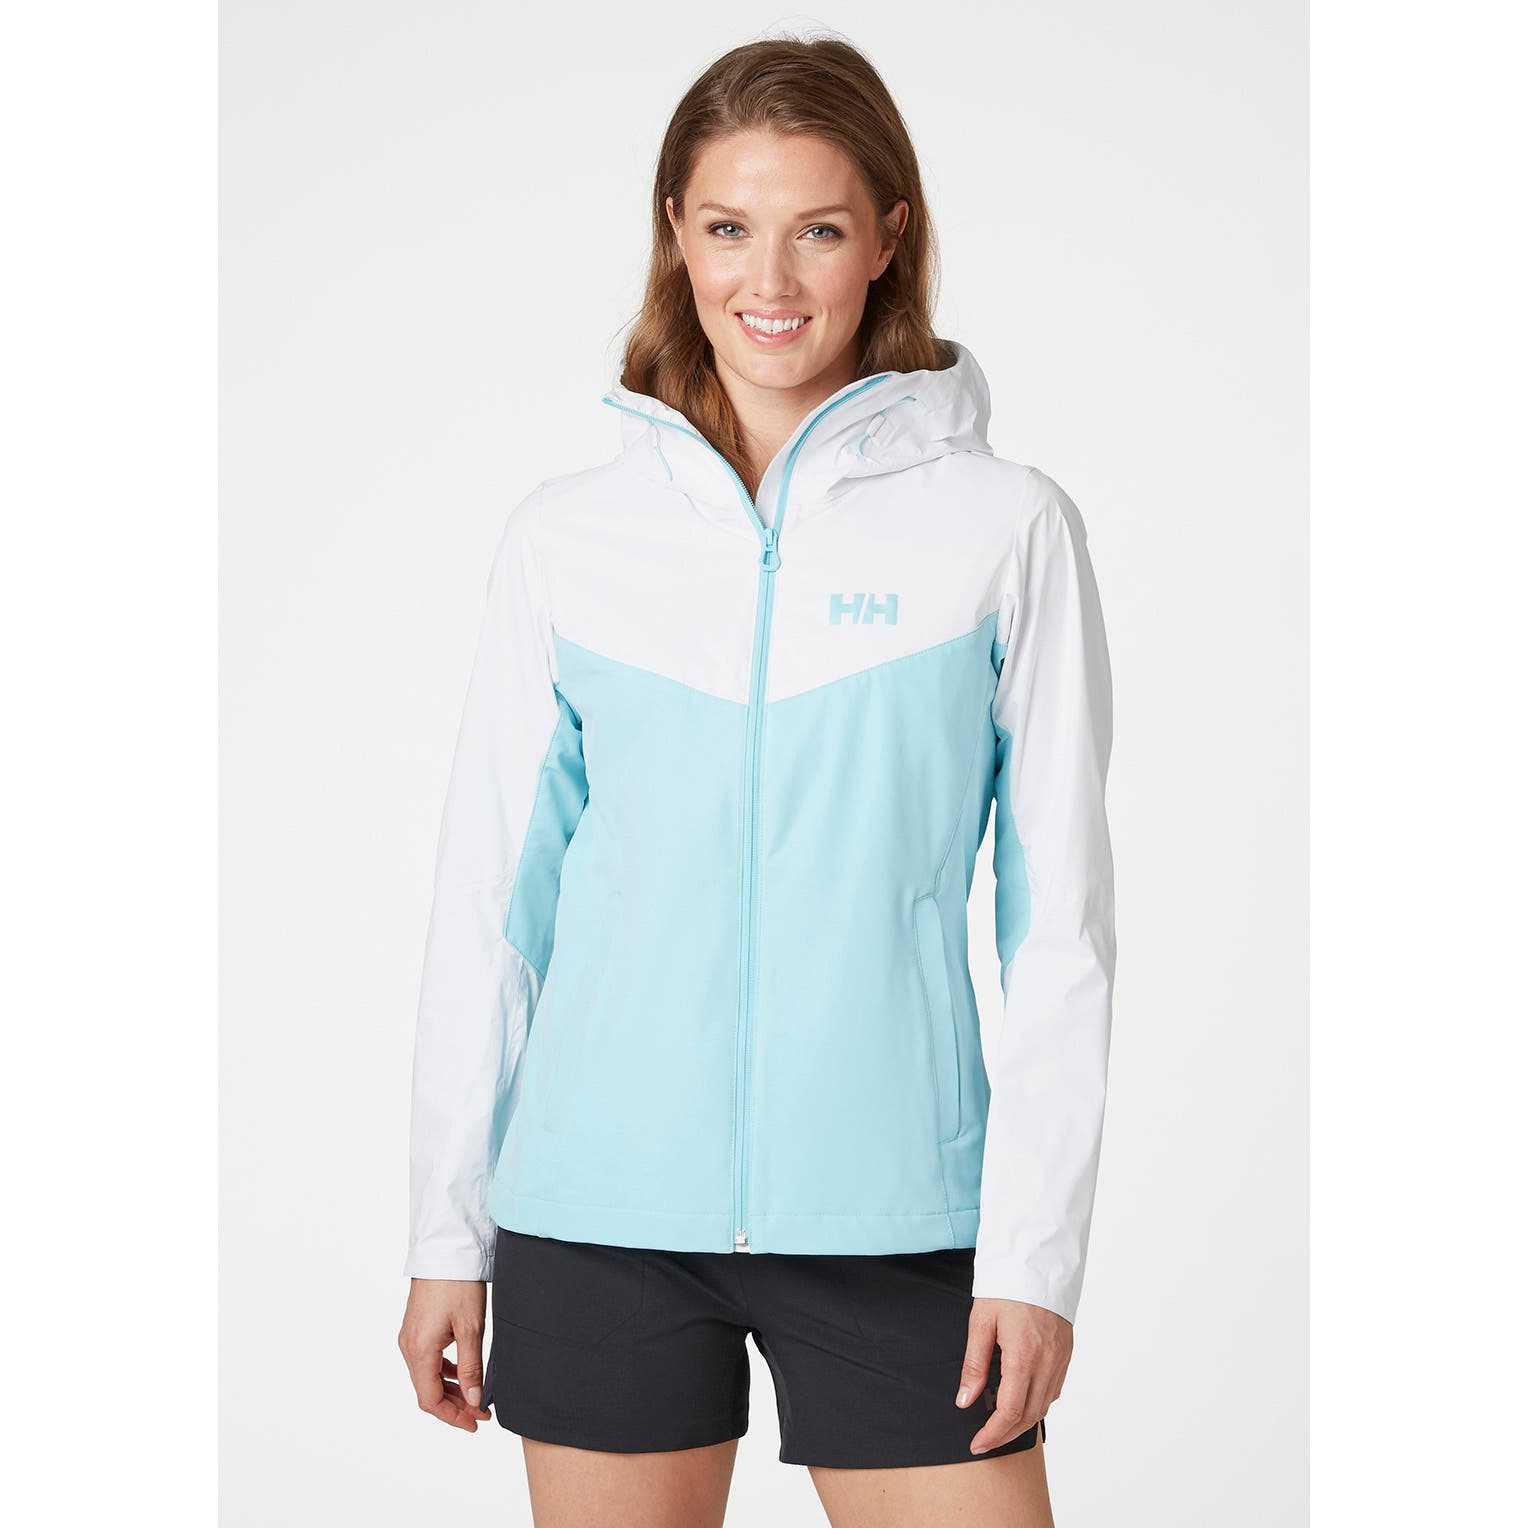 Helly Hansen Heta 2.0 Jacket, dame